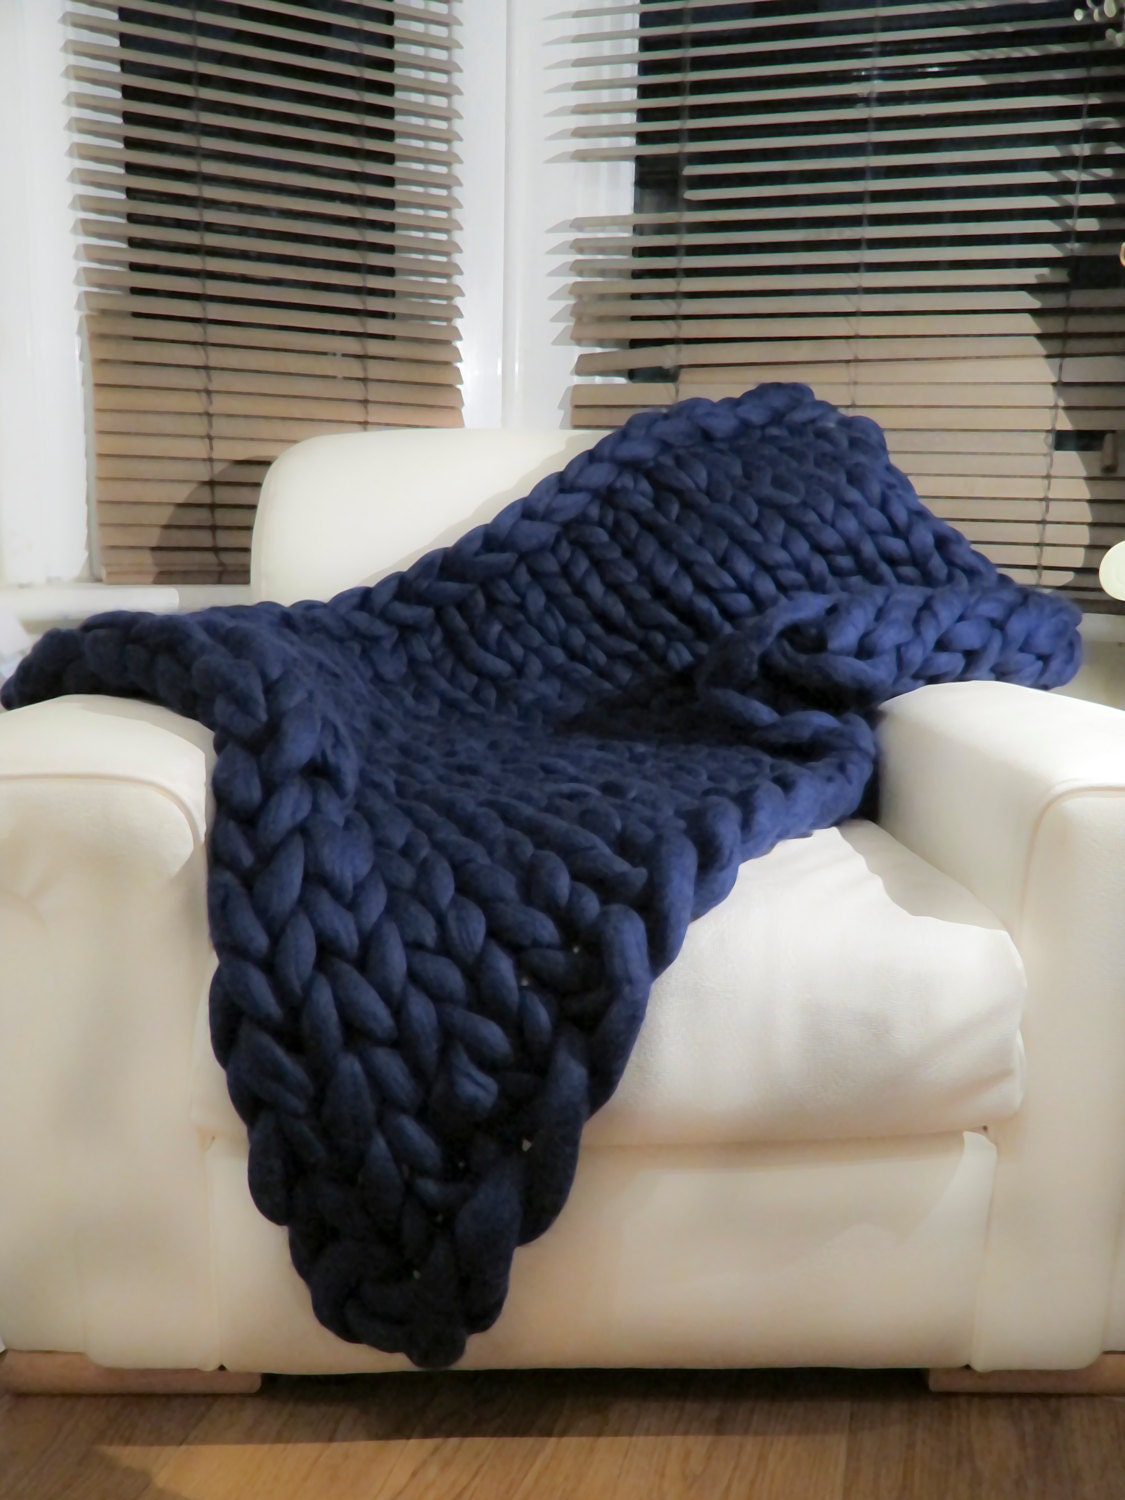 Knitting Wool Blanket : Super chunky knit blanket pure merino wool navy